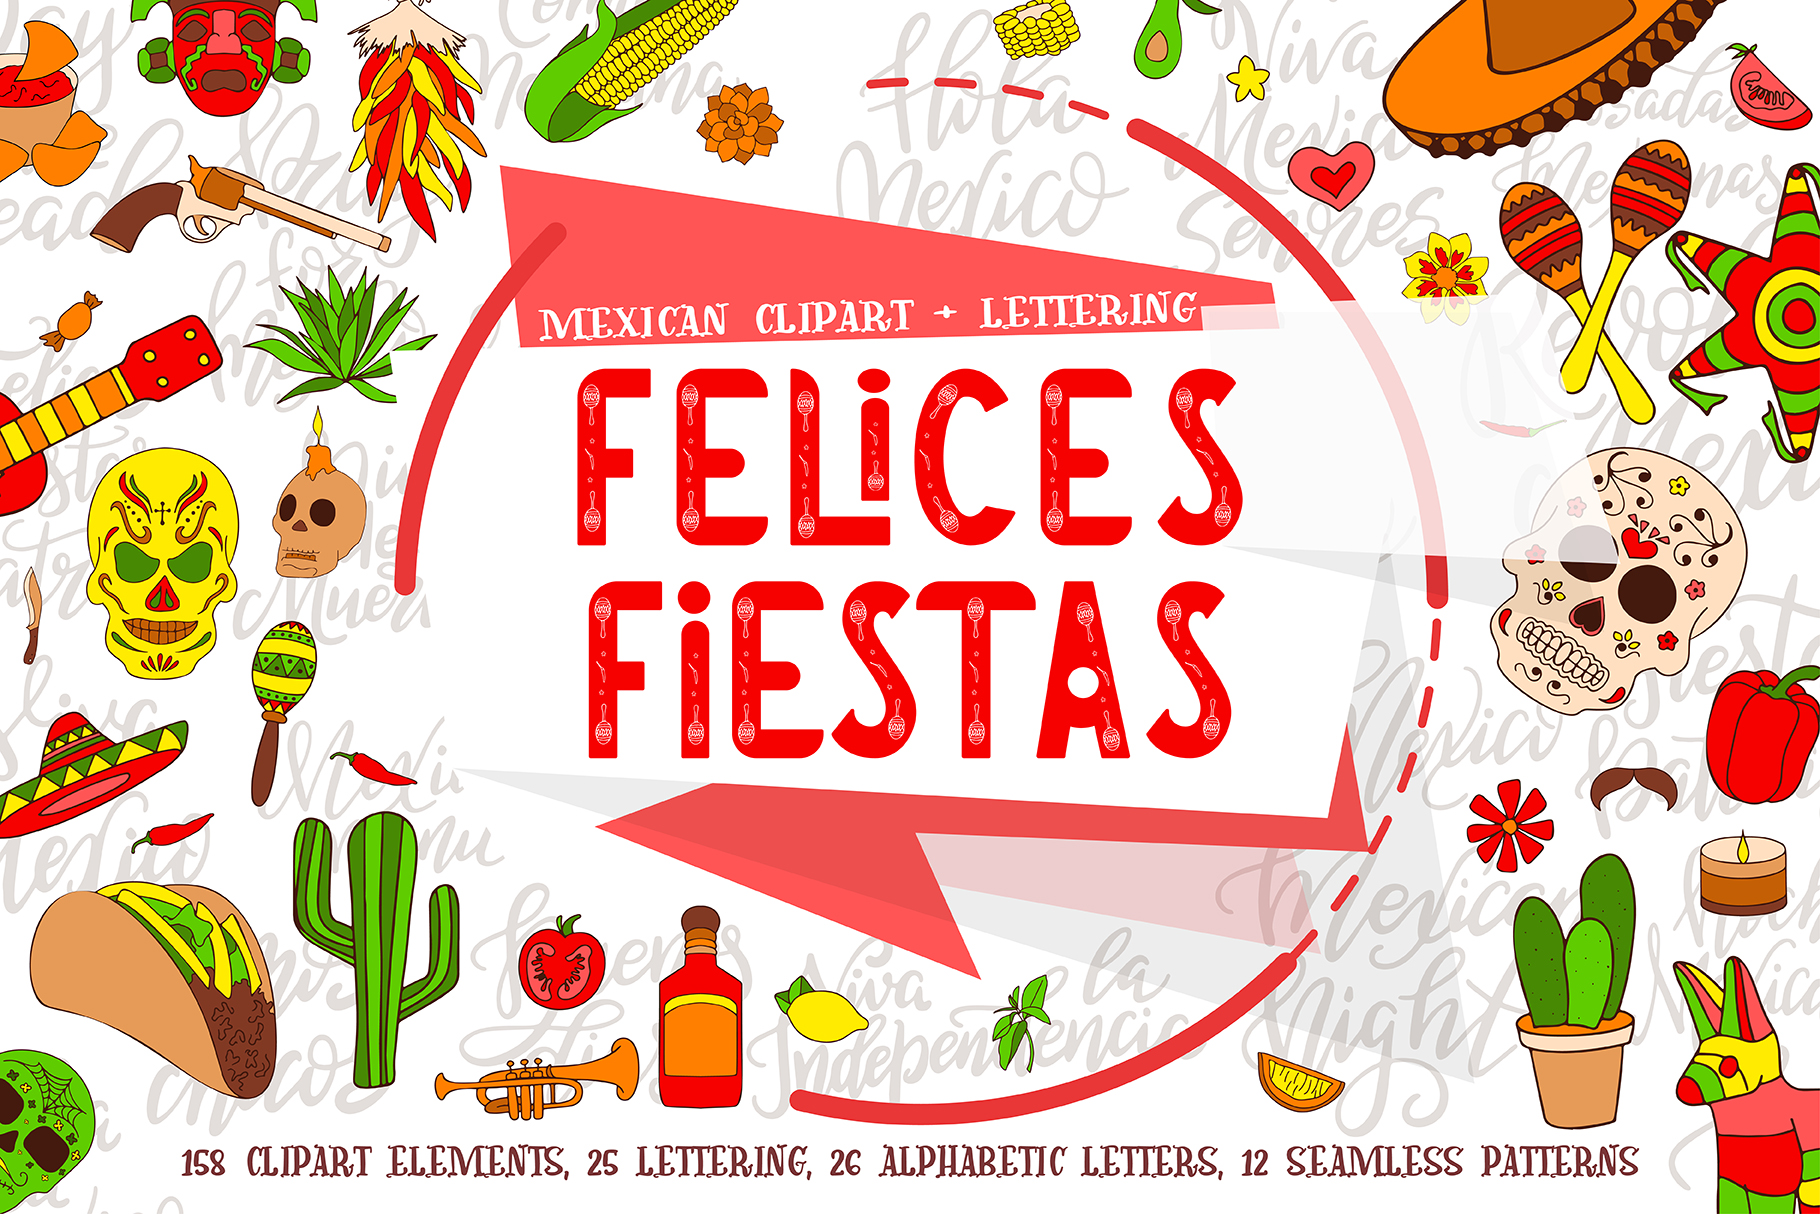 Felices Fiestas Clipart + Lettering Graphic Illustrations By tregubova.jul